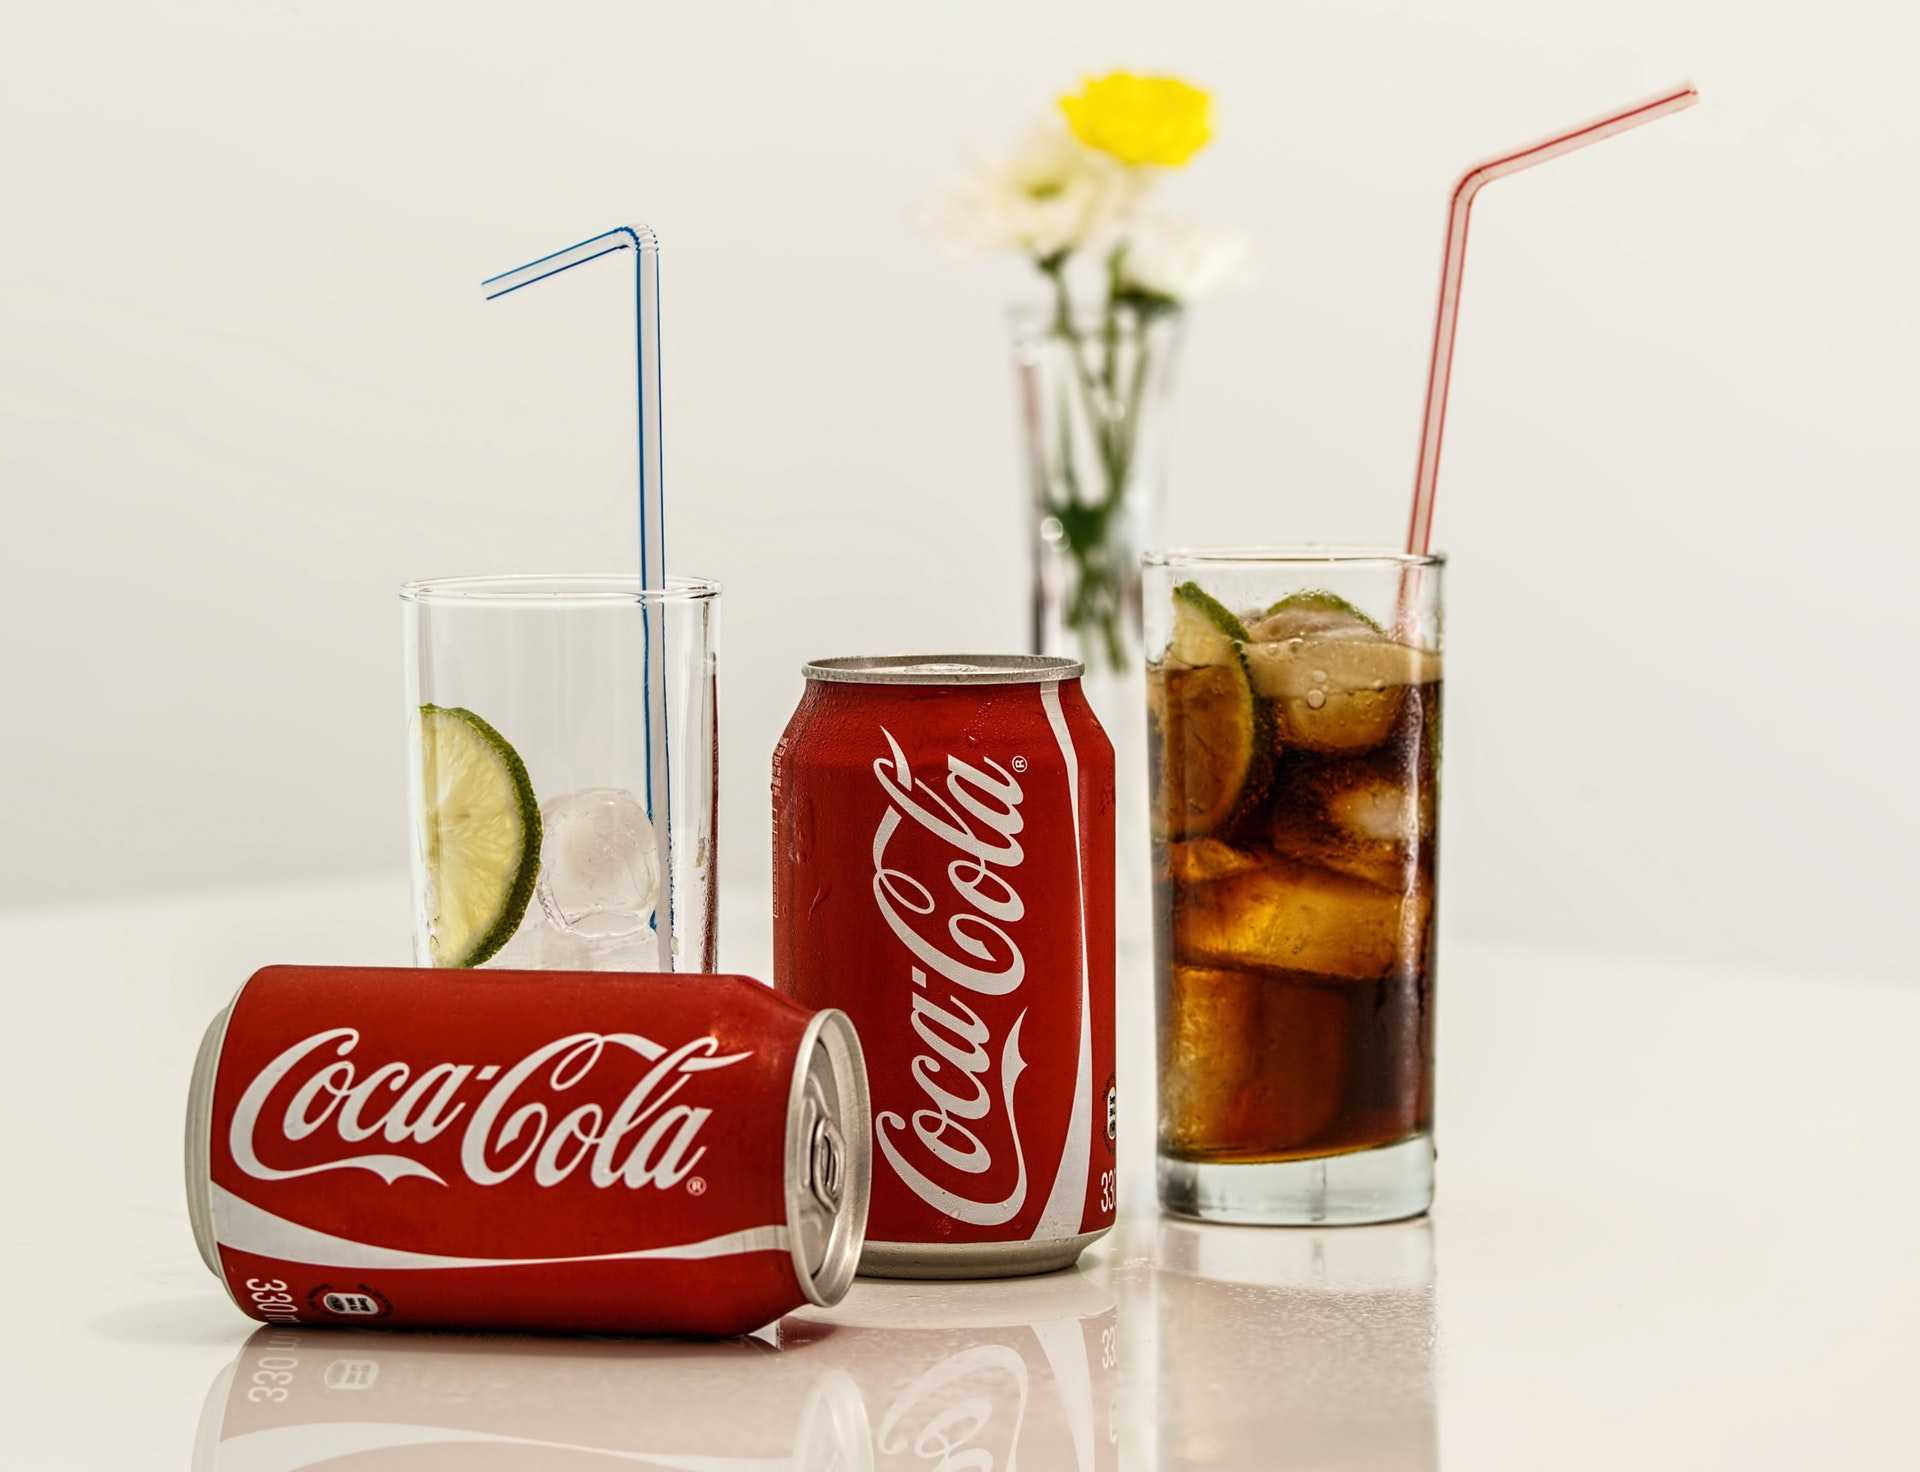 will diet soda increase blood sugar levels?